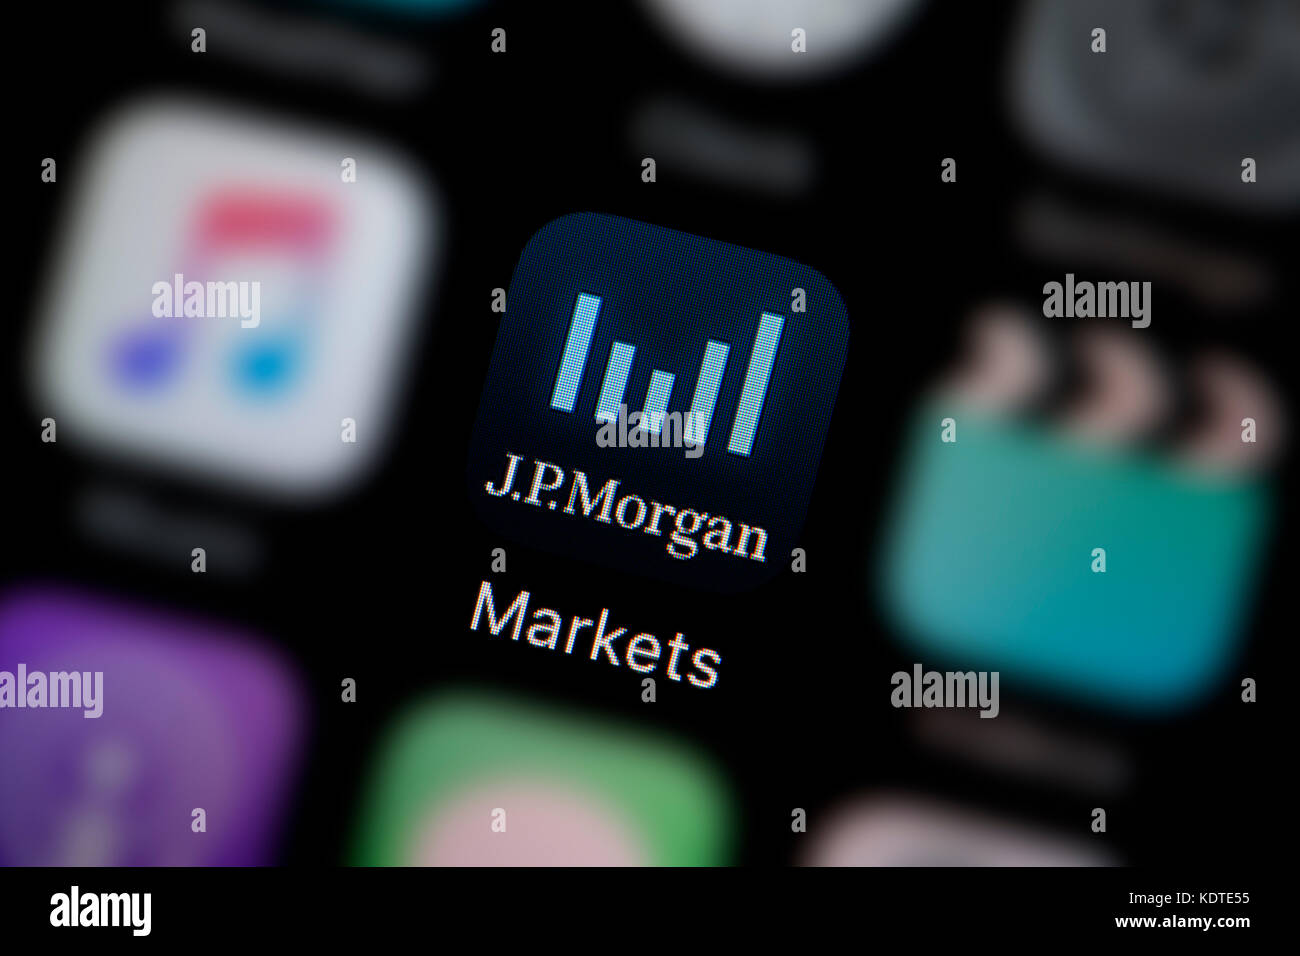 A close-up shot of the logo representing the JP Morgan markets app icon, as seen on the screen of a smart phone Stock Photo